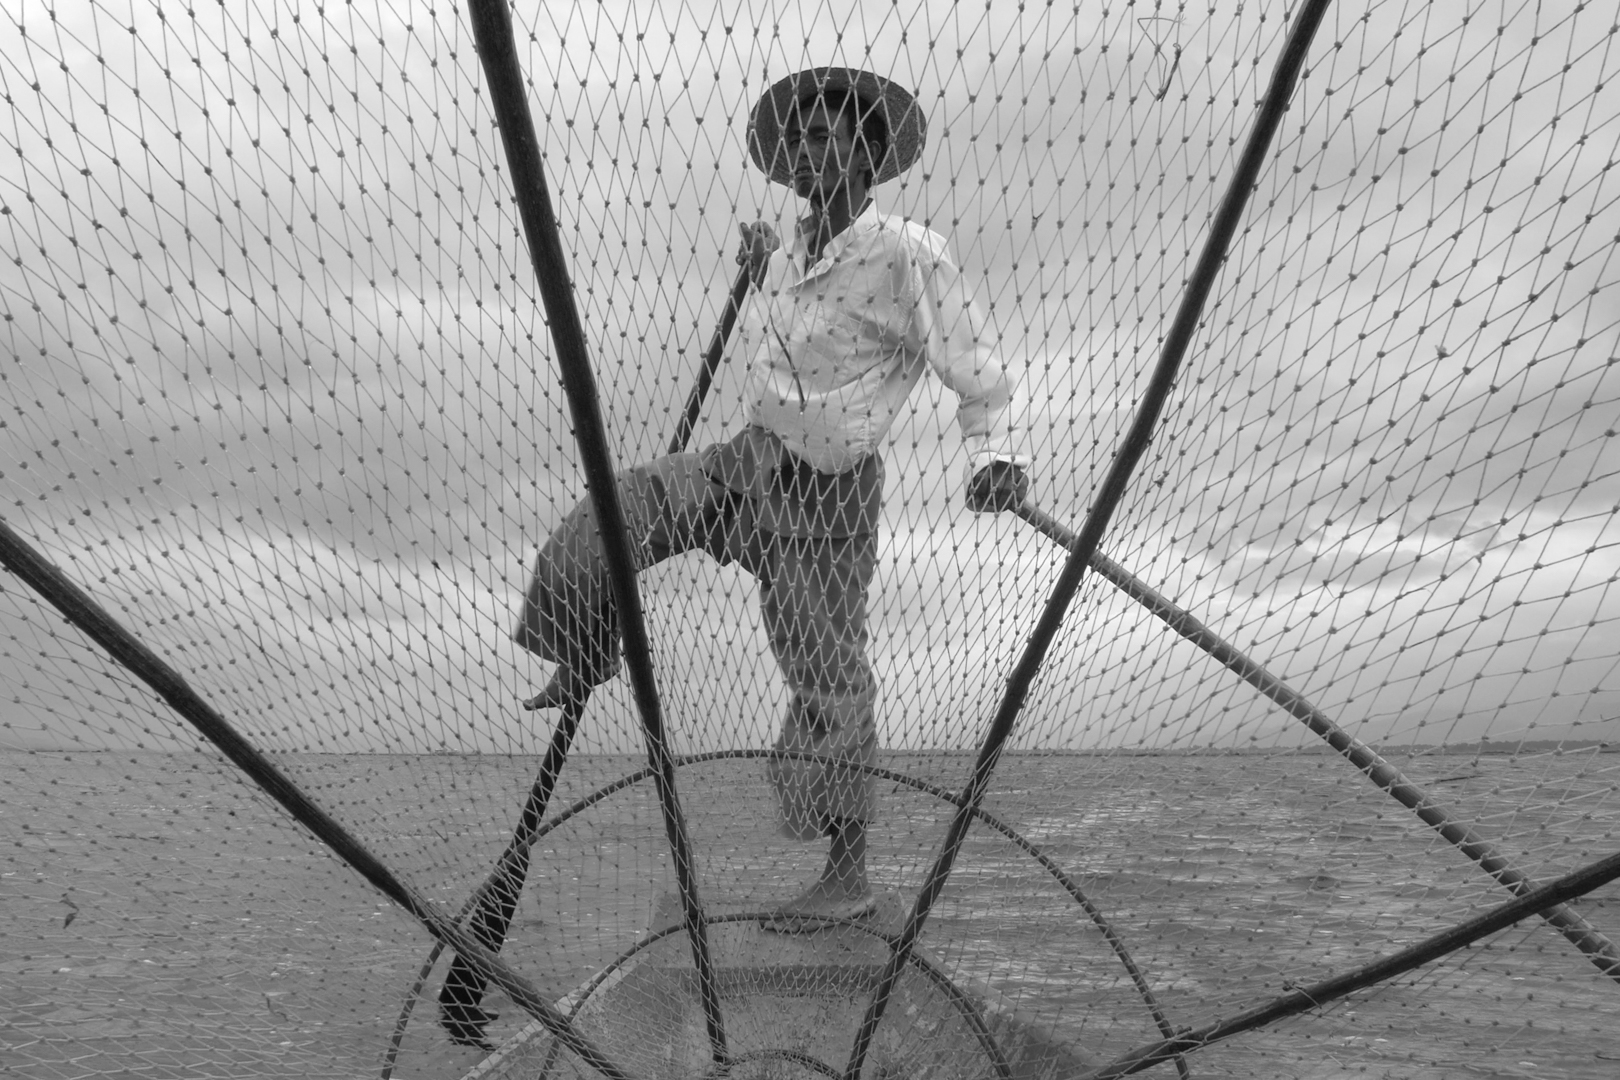 Myanmar-Inley-Lake-One-Leg-Fisherman-Inside-The-Net-Photo-by-Cyril-Eberle-MOM-MYANMAR-CAM-C-240615